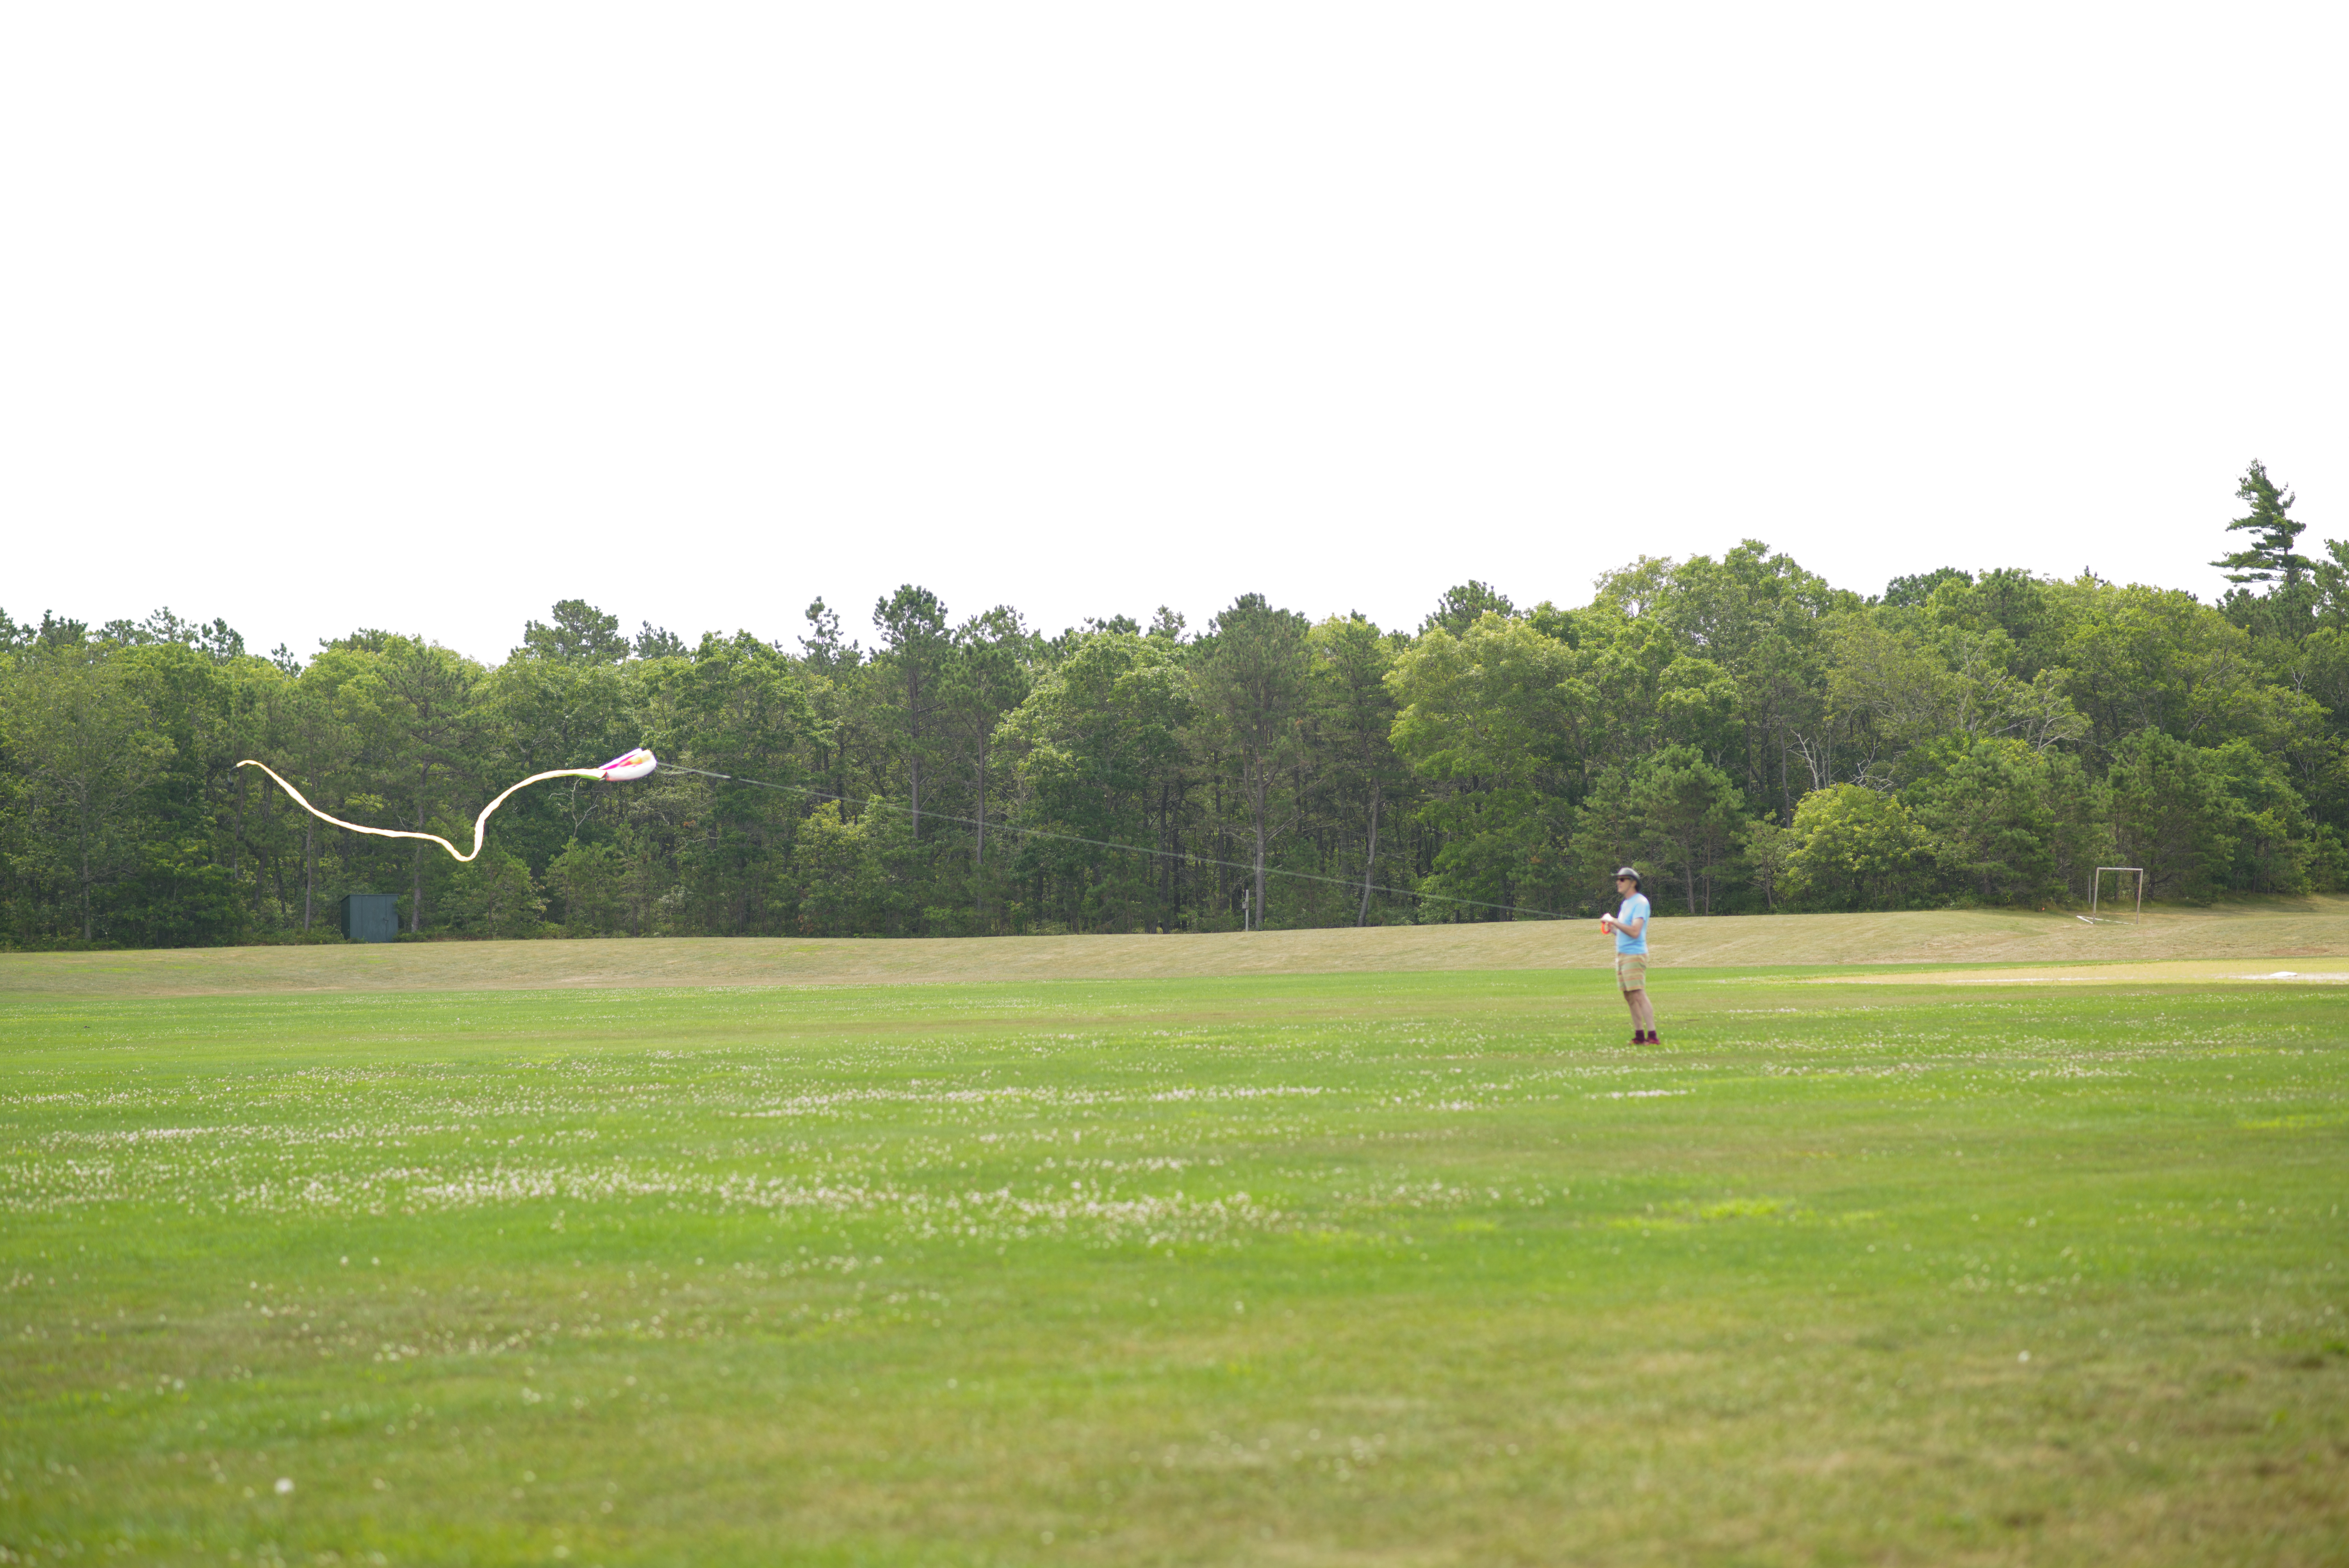 Dad flying his kite